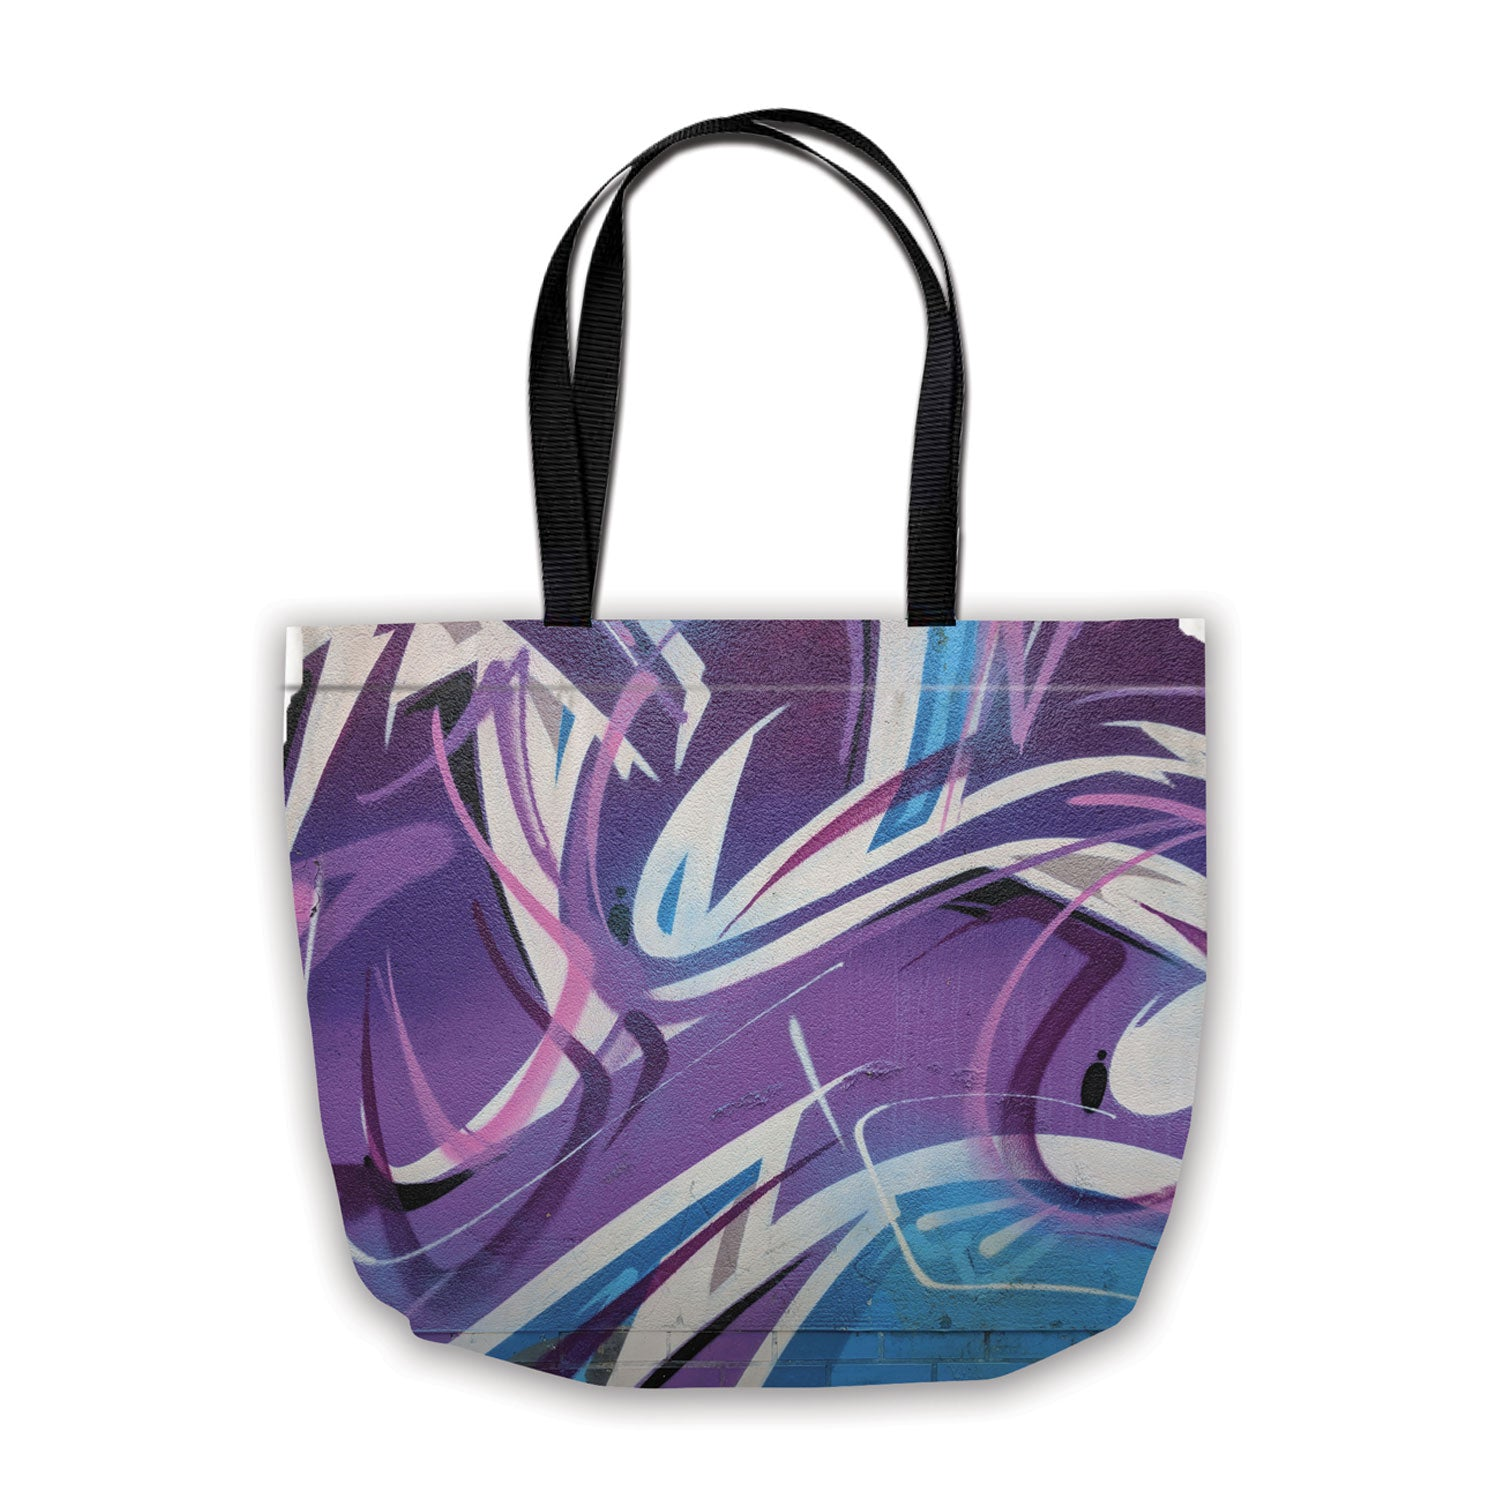 shopping bag with spraypaint design in blue and purple